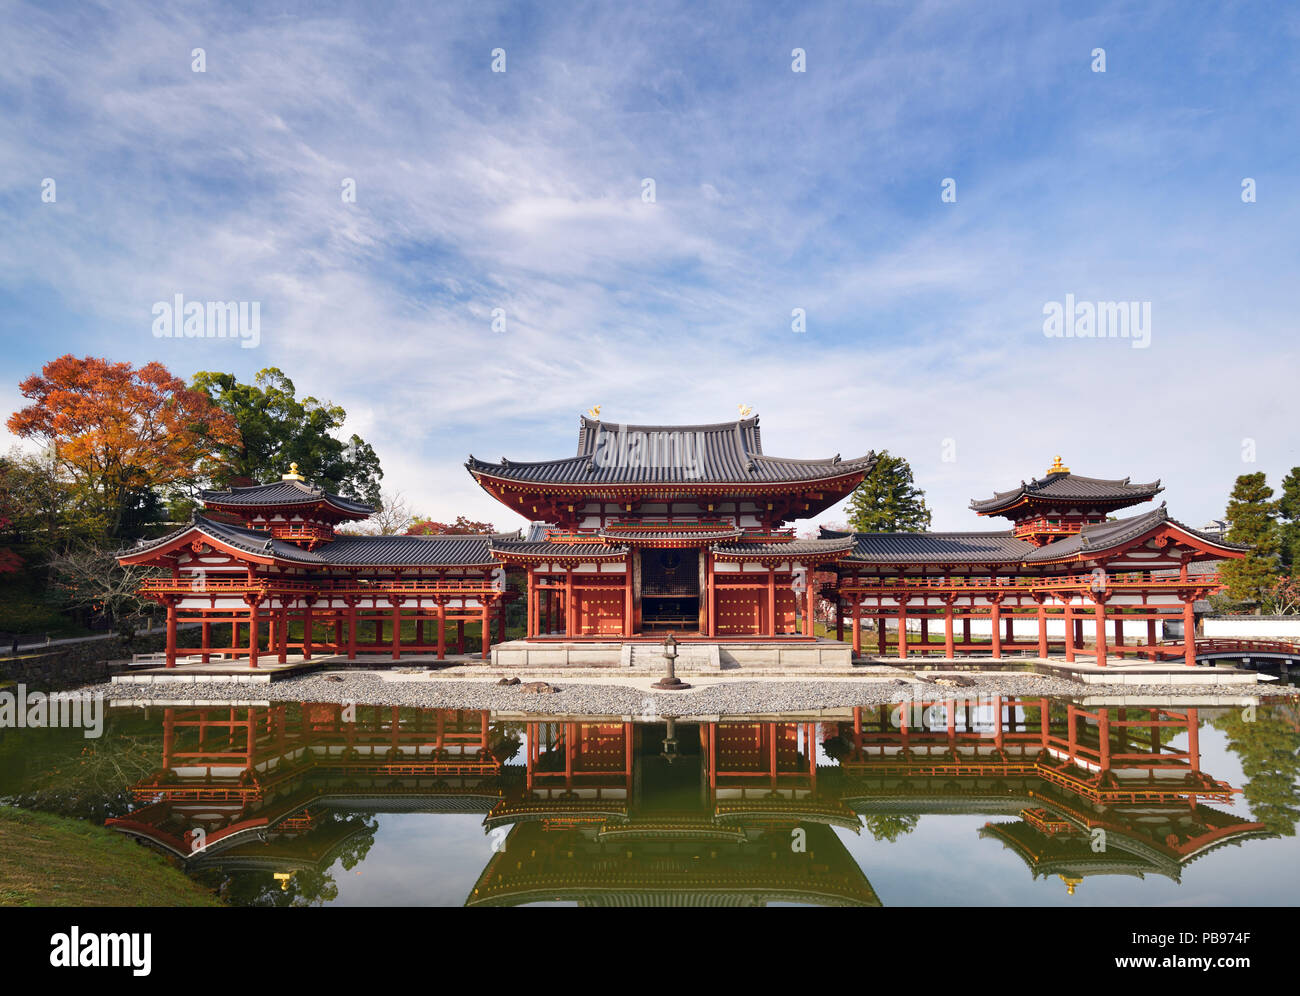 Beautiful Phoenix Hall, Amida hall of Byodoin temple front view, standing under blue sky on Kojima island of Jodoshiki Teien garden pond on a bright s - Stock Image